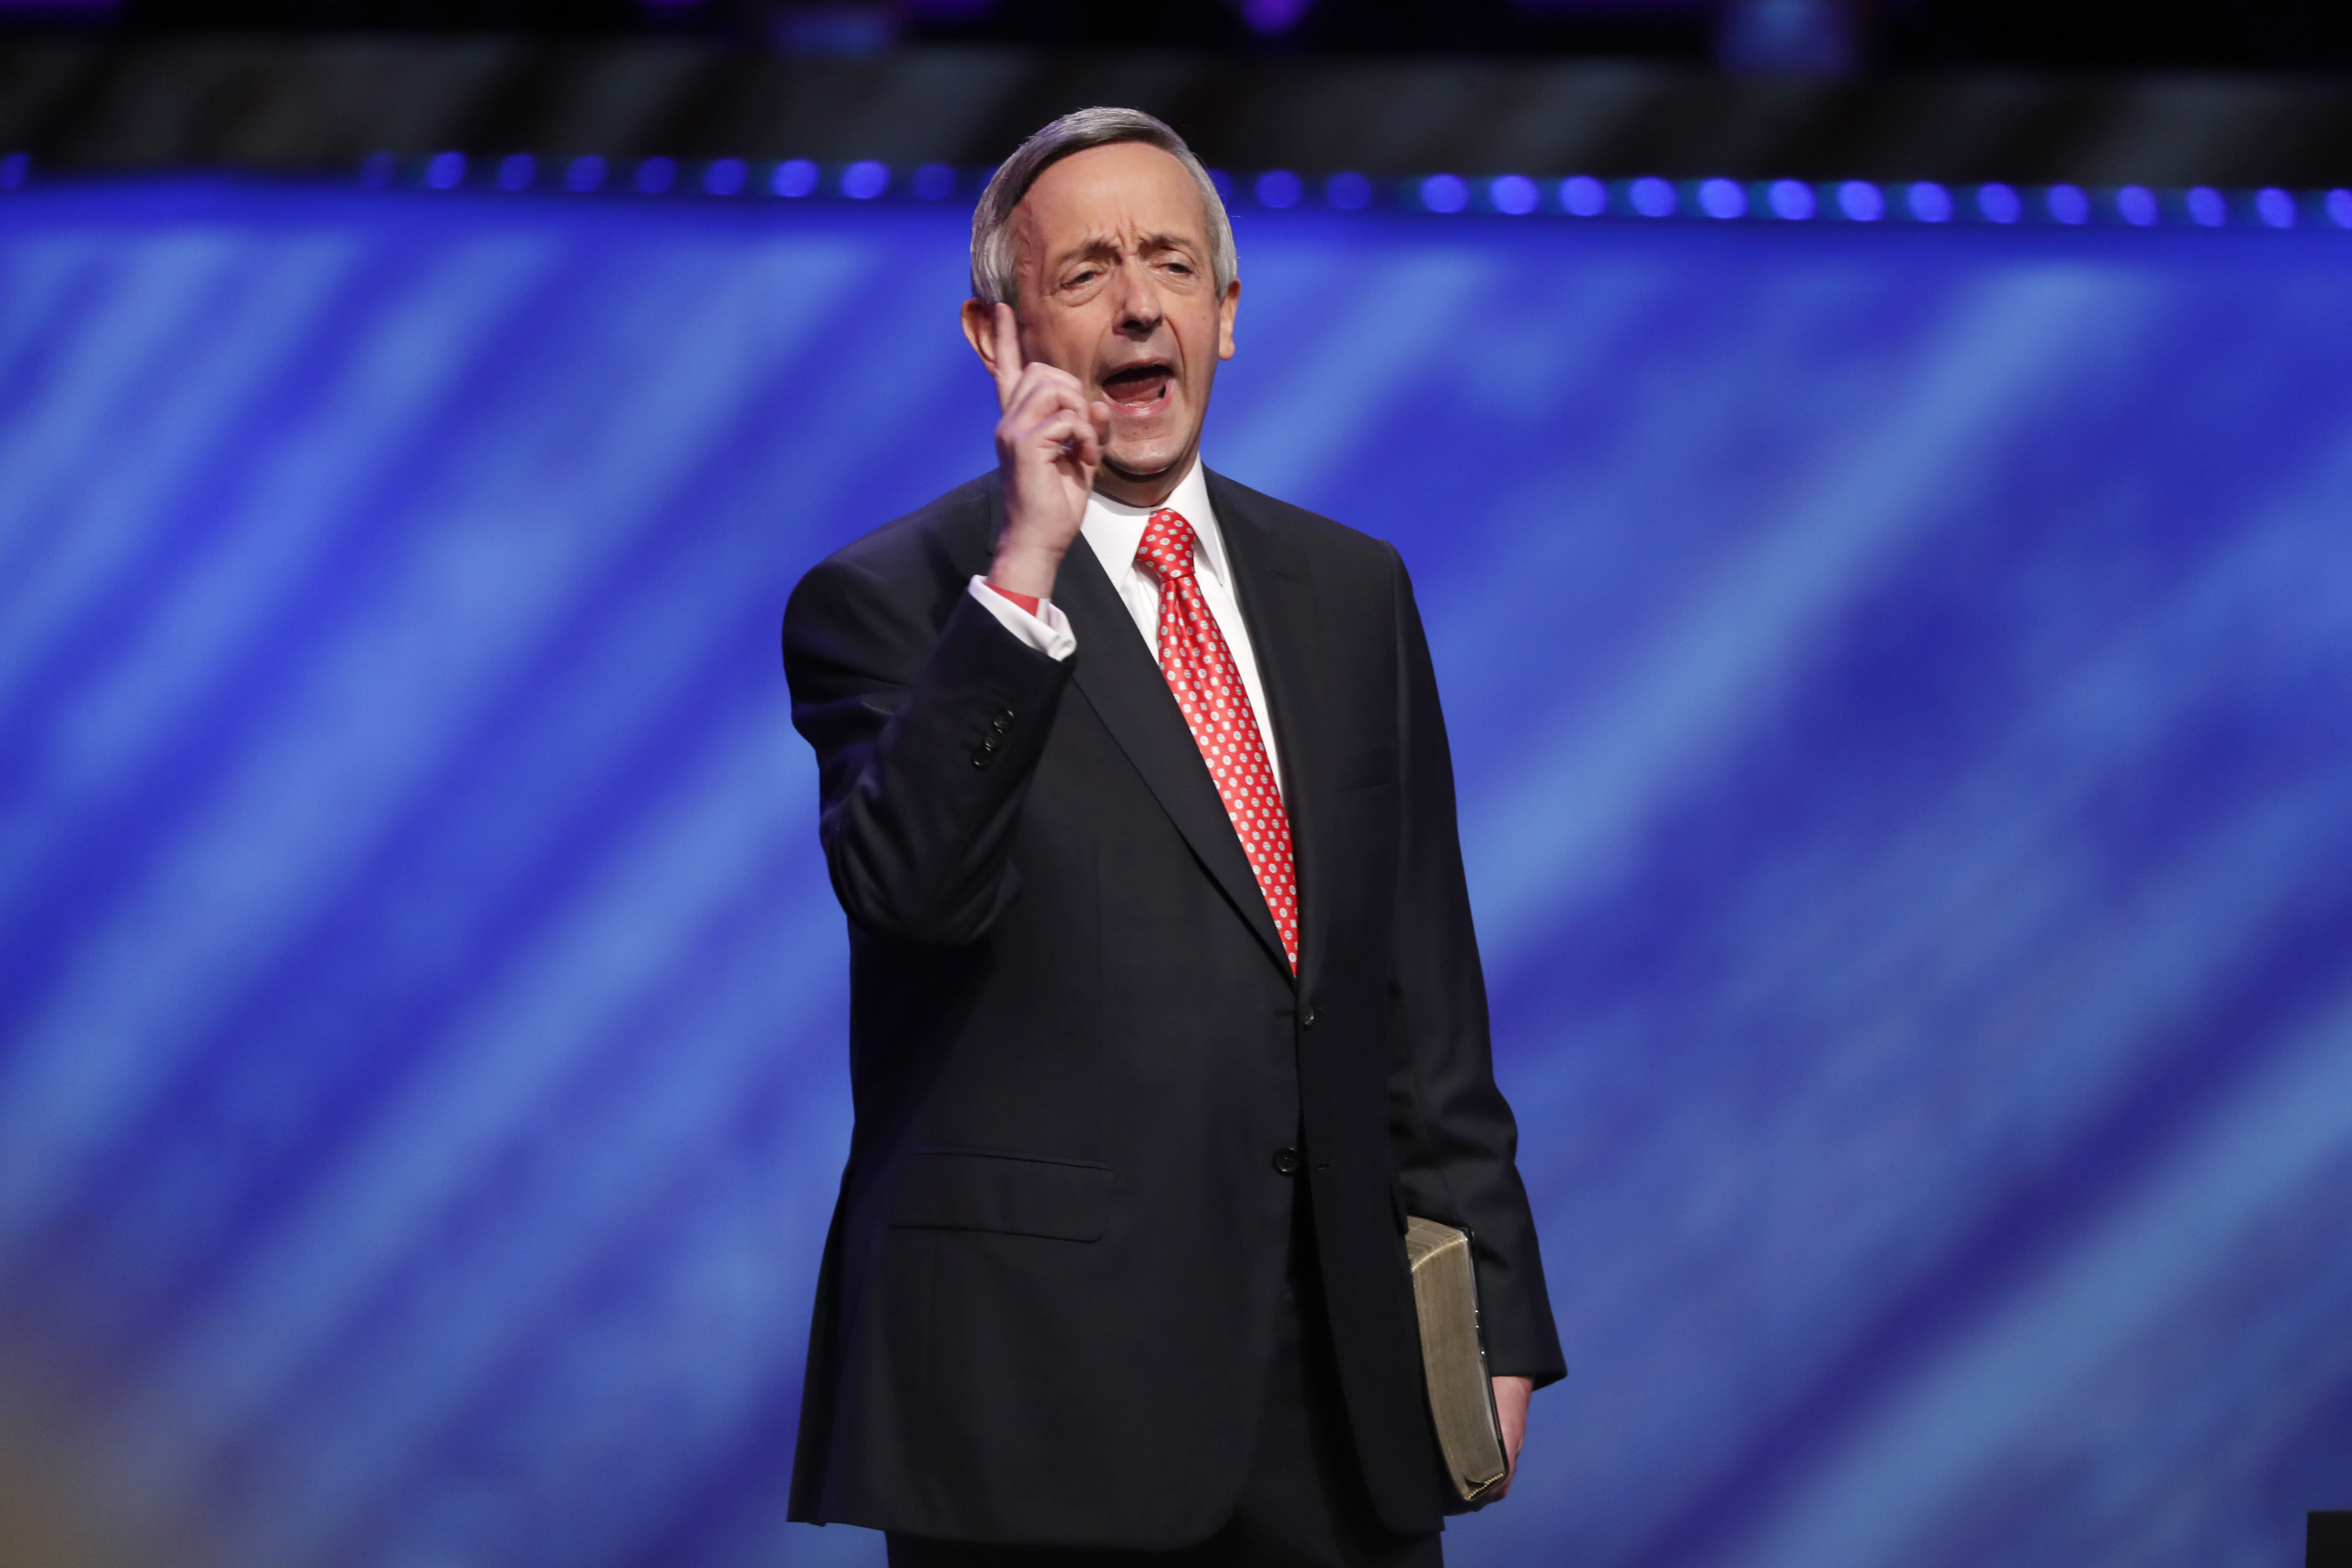 Senior Pastor Dr. Robert Jeffress addresses attendees before Vice President Mike Pence spoke at the Southern Baptist megachurch First Baptist Dallas during a Celebrate Freedom Rally in Dallas, Sunday, June 28, 2020. (AP Photo/Tony Gutierrez)